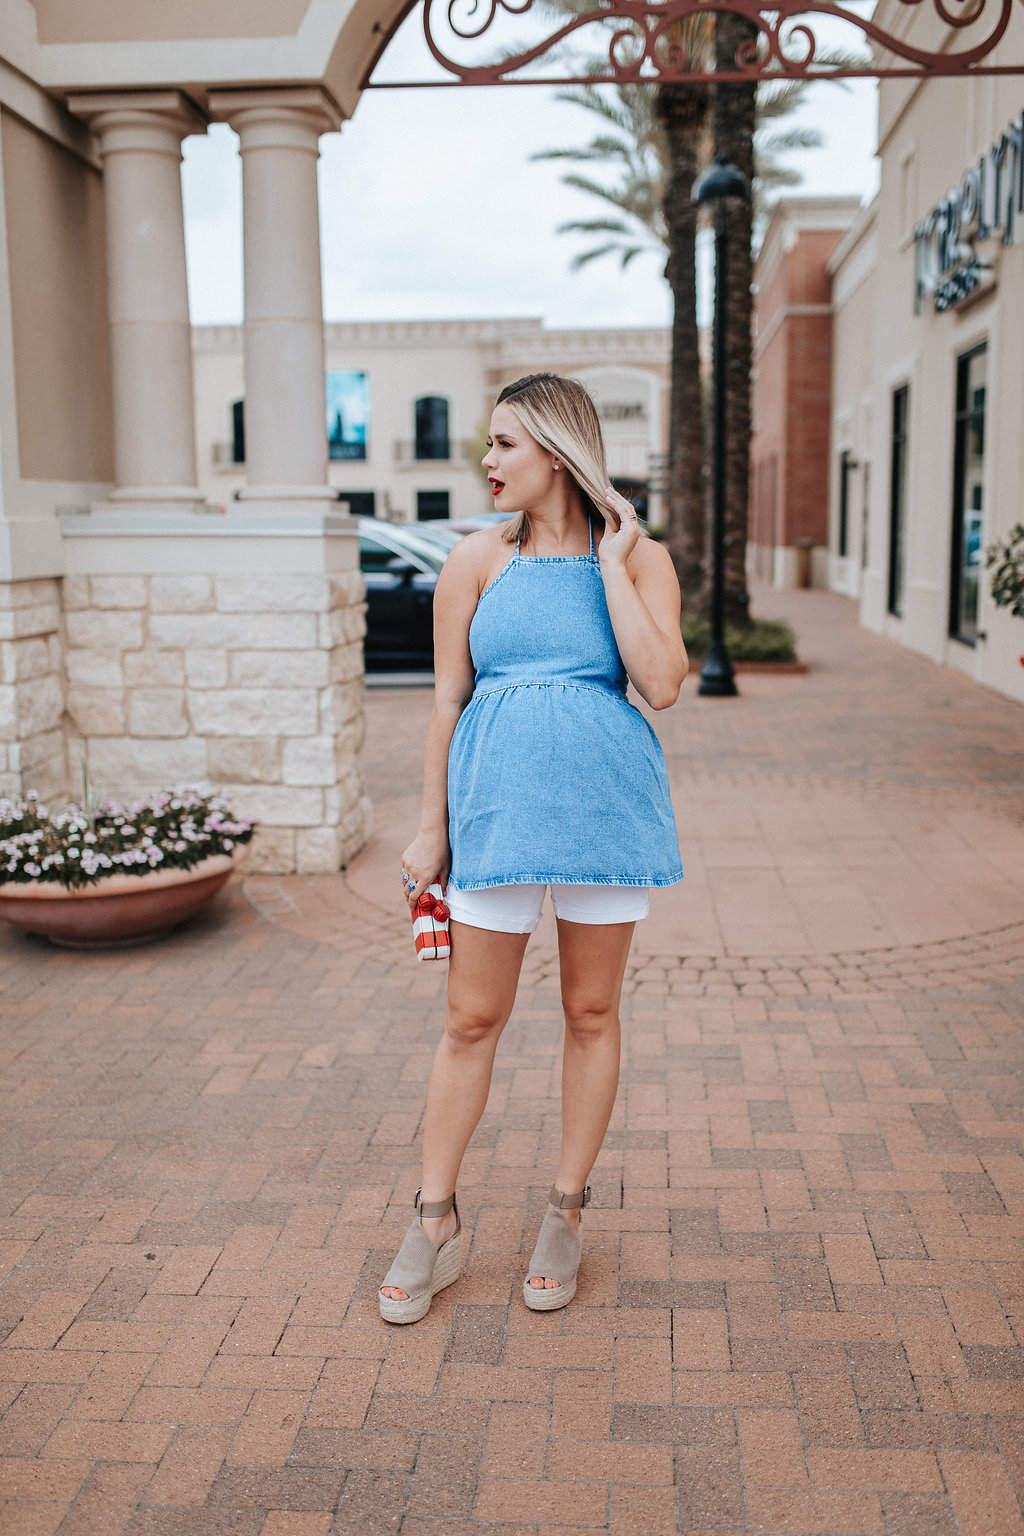 4th of July Outfit Maternity Style | Red, white, and blue outfit | Maternity fashion | Uptown with Elly Brown